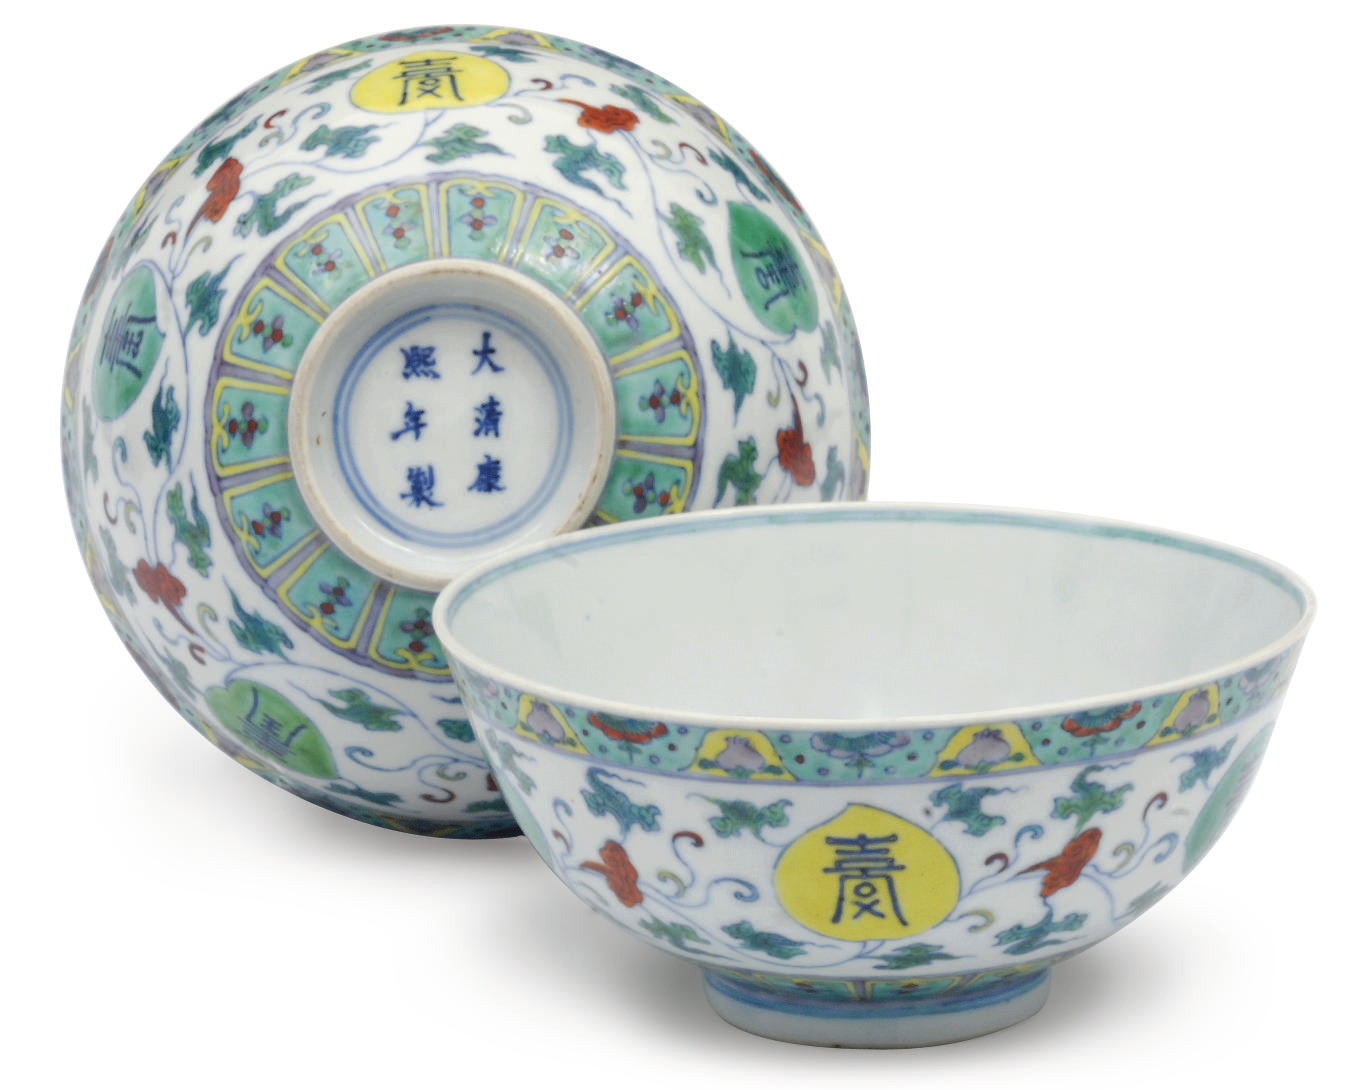 Four Doucai bowls